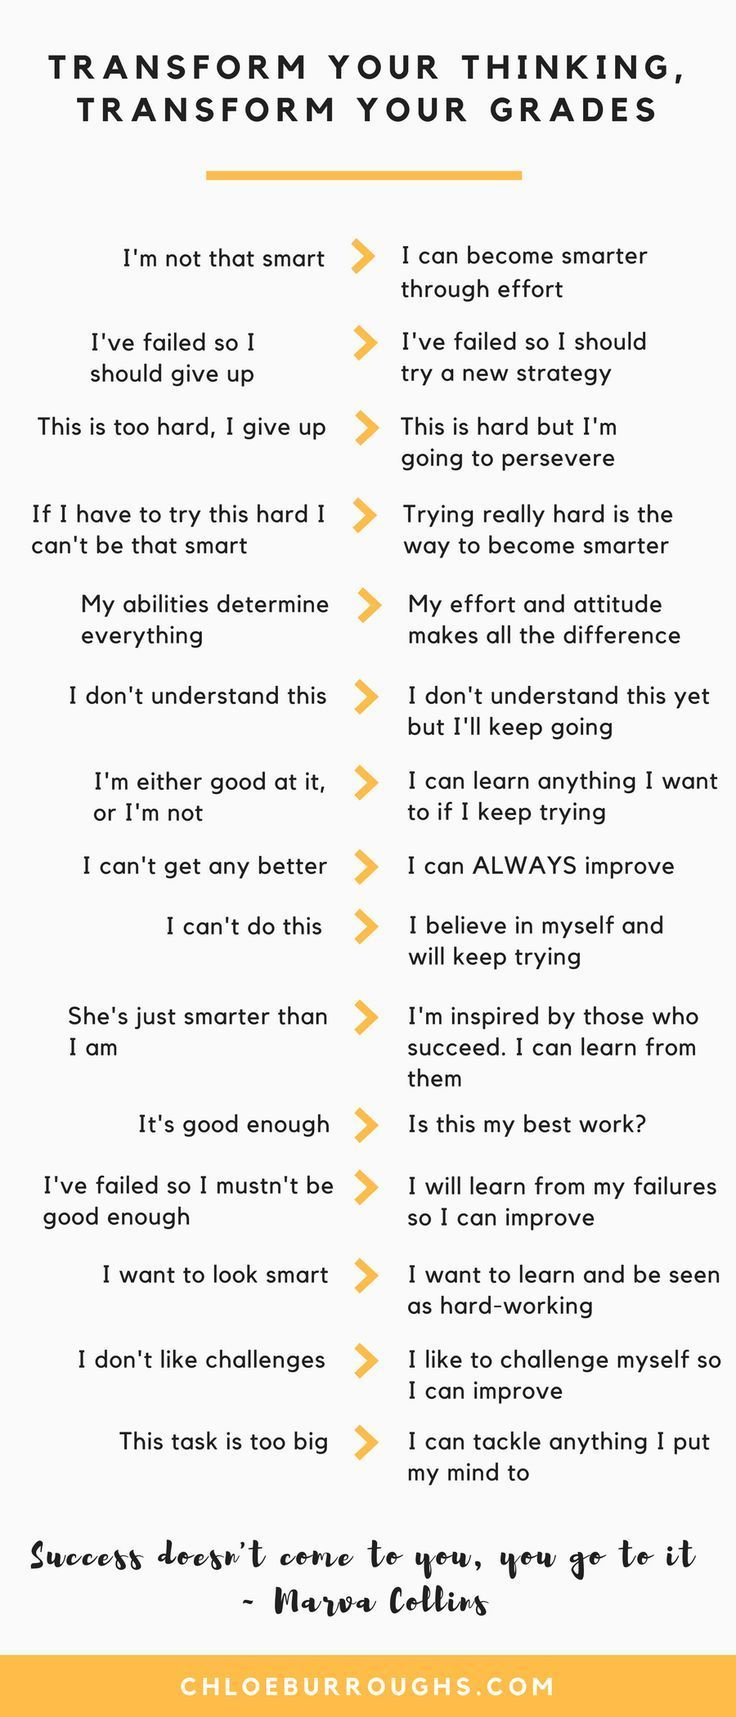 How to Develop a Growth Mindset and Achieve Higher GradesAmalie